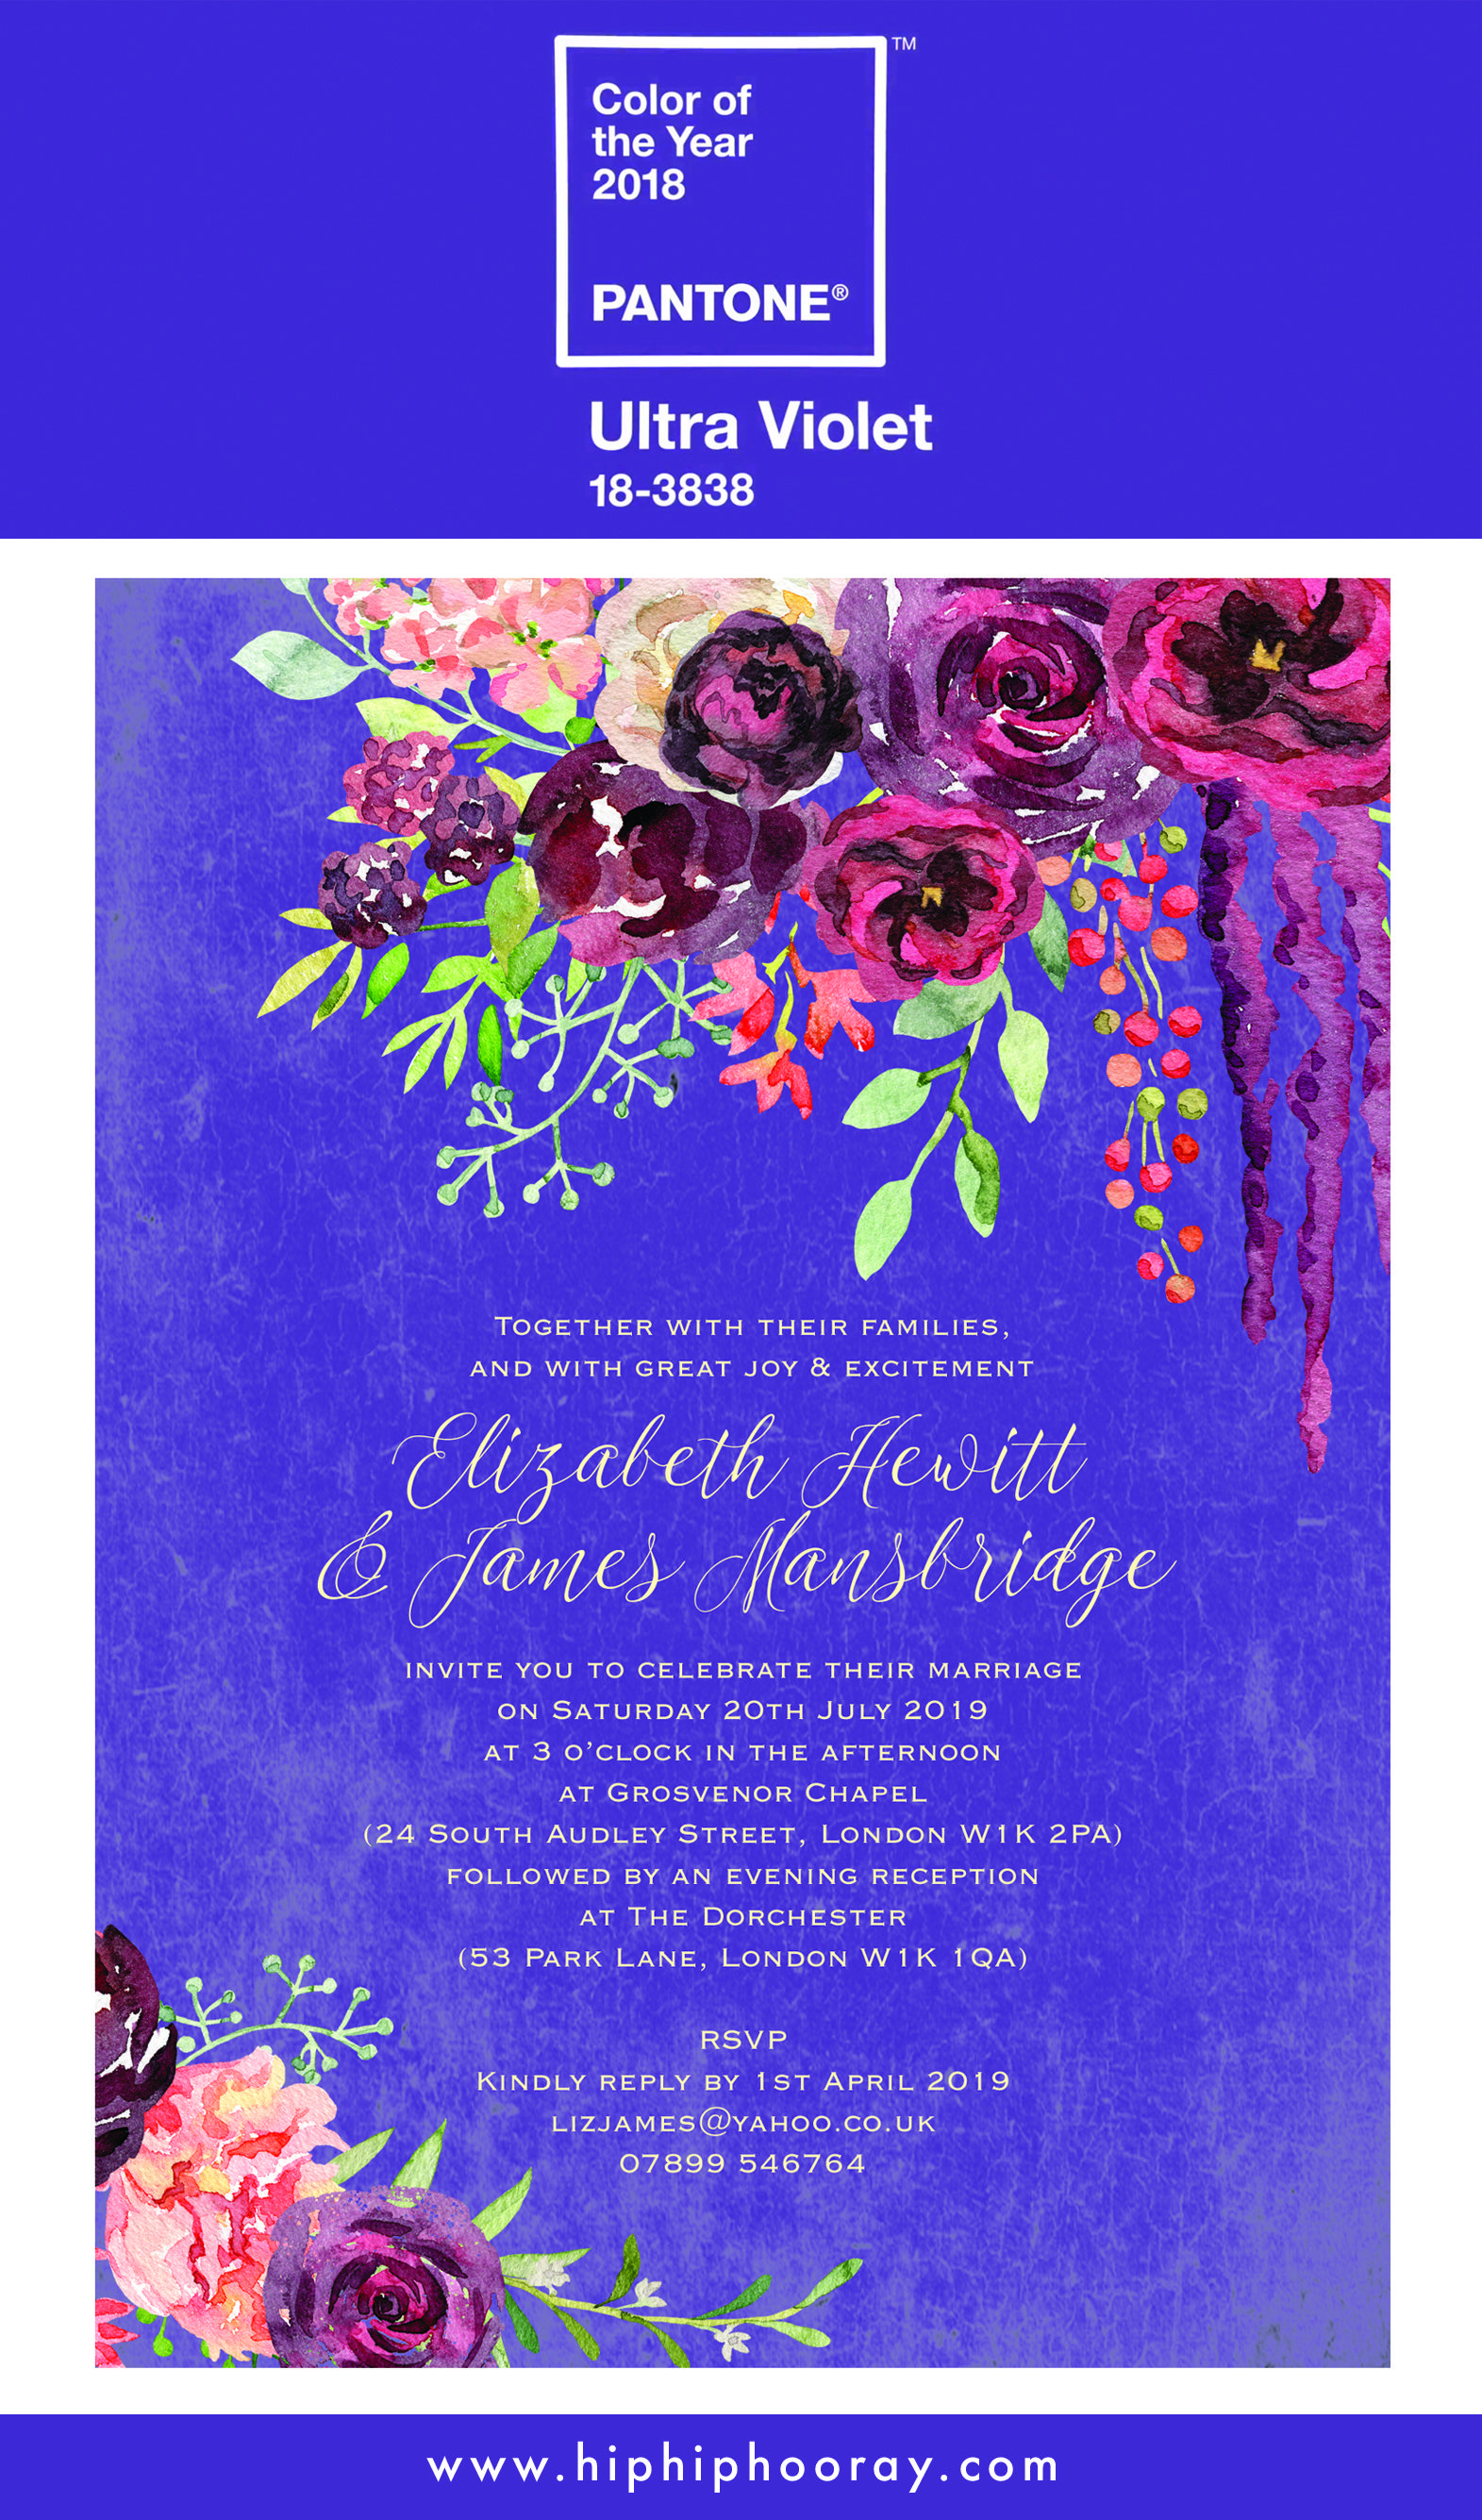 Pantone colour of the year 2018 - Ultra Violet. Wedding stationery and invitations by Hip Hip Hooray.  #pantone #pantonecolouroftheyear #pantonecoloroftheyear #pantonecolouroftheyear2018 #pantonecoloroftheyear2018 #ultraviolet #purplewedding #purpleweddinginvitations #purpleweddingstationery